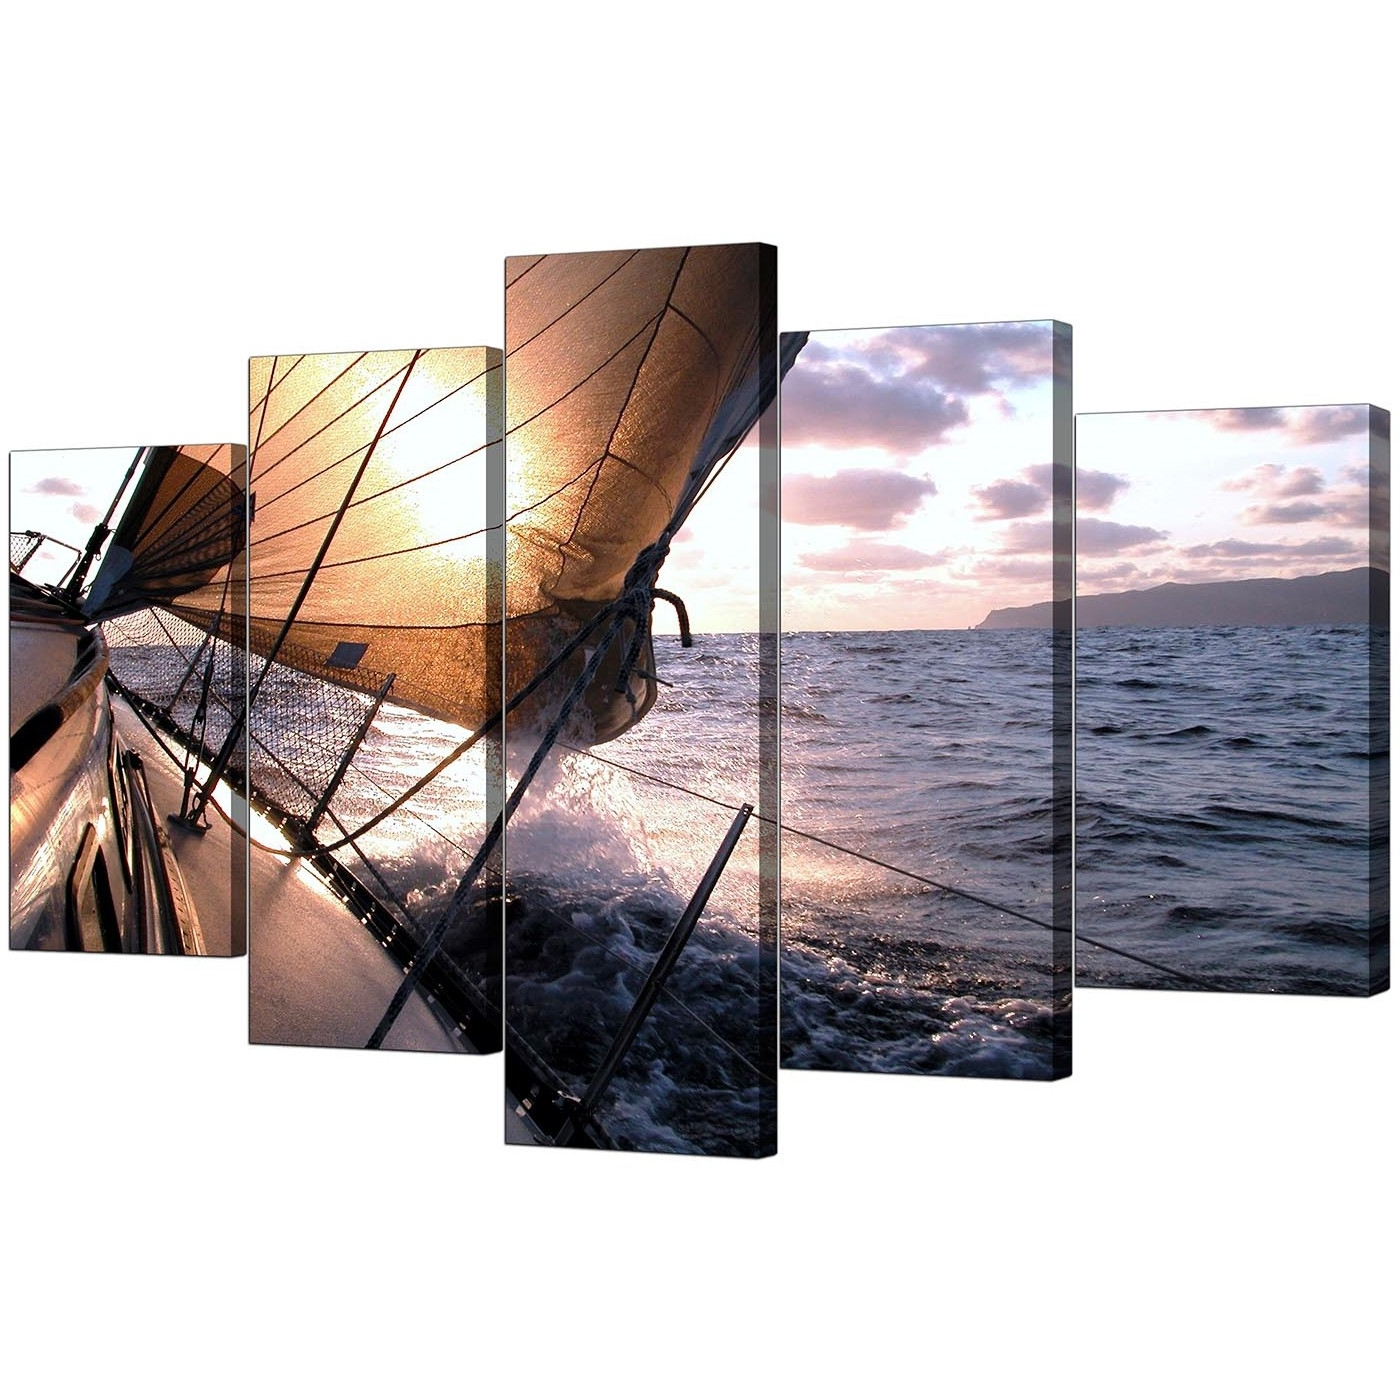 Boat Canvas Prints Uk For Your Living Room – 5 Piece Inside Latest 5 Piece Wall Art Canvas (View 12 of 15)